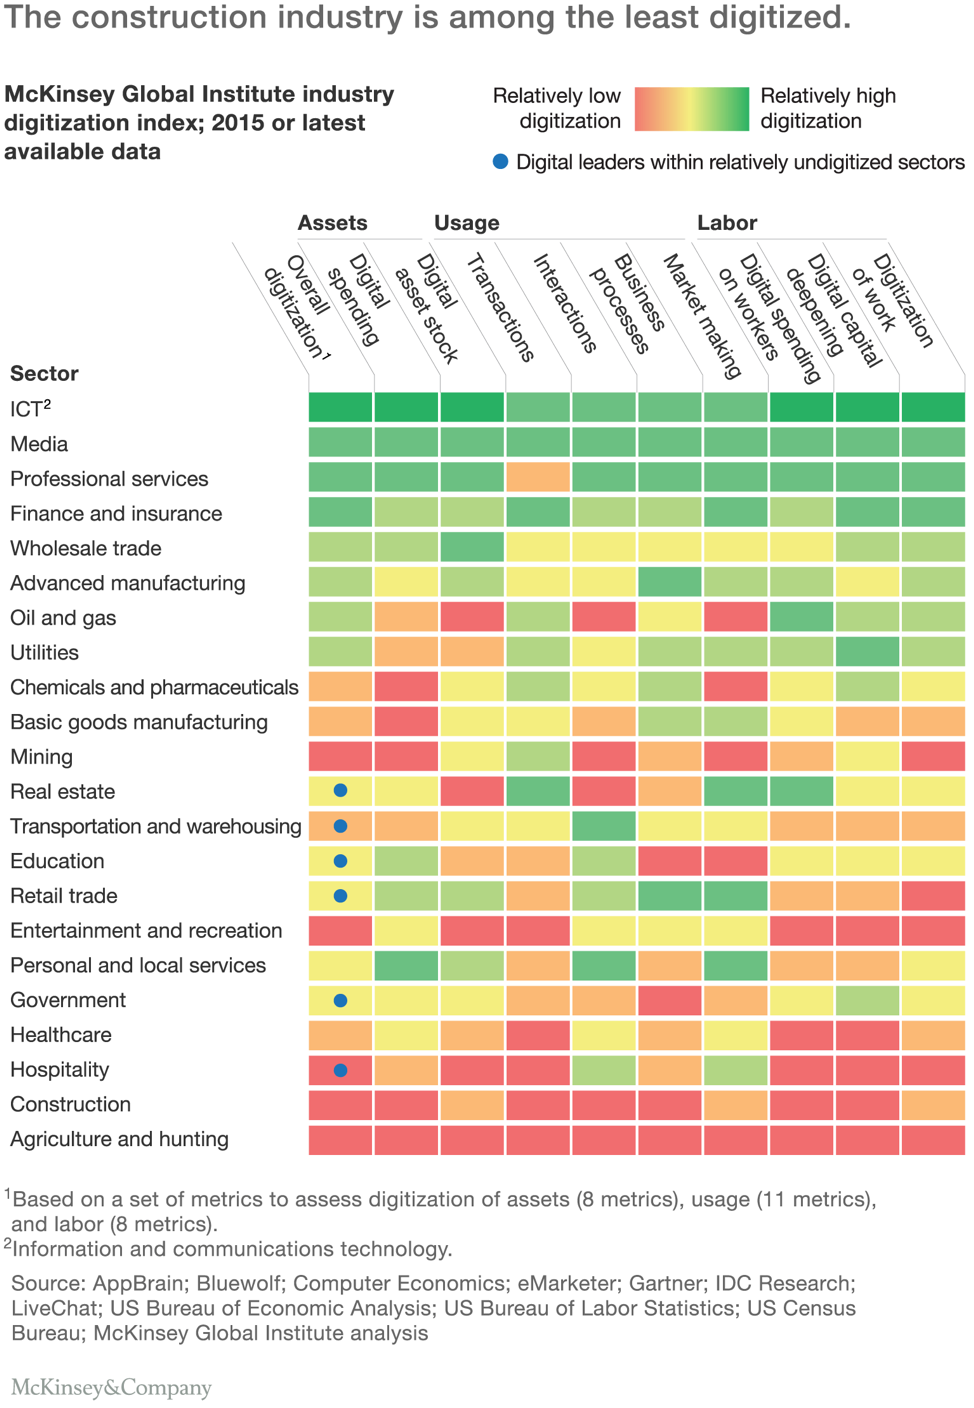 mckinsey-construction-industry-digitization.png